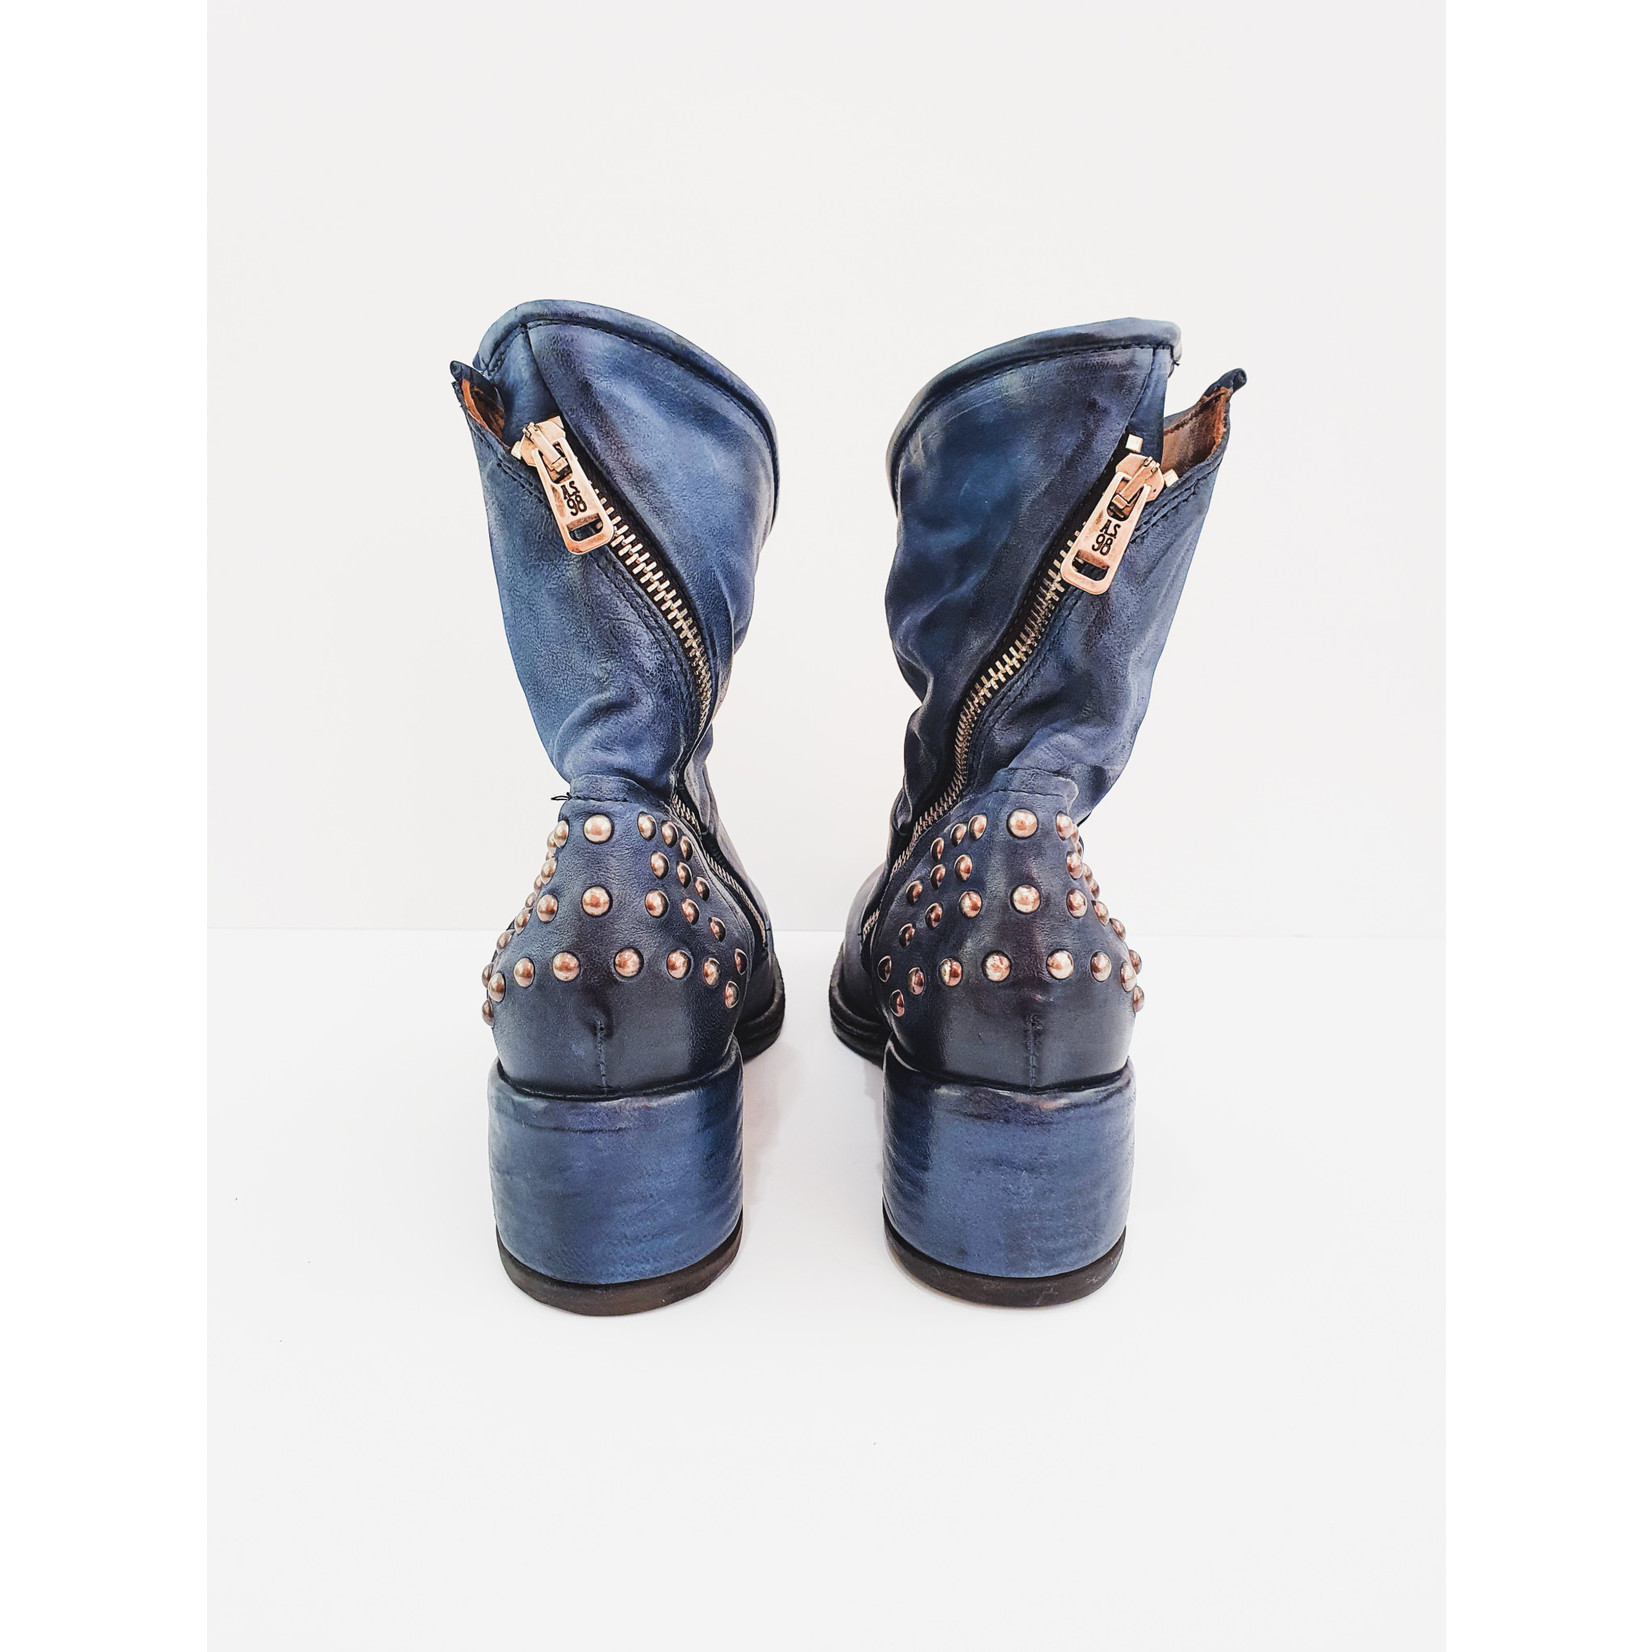 Blue Baby Blue boots